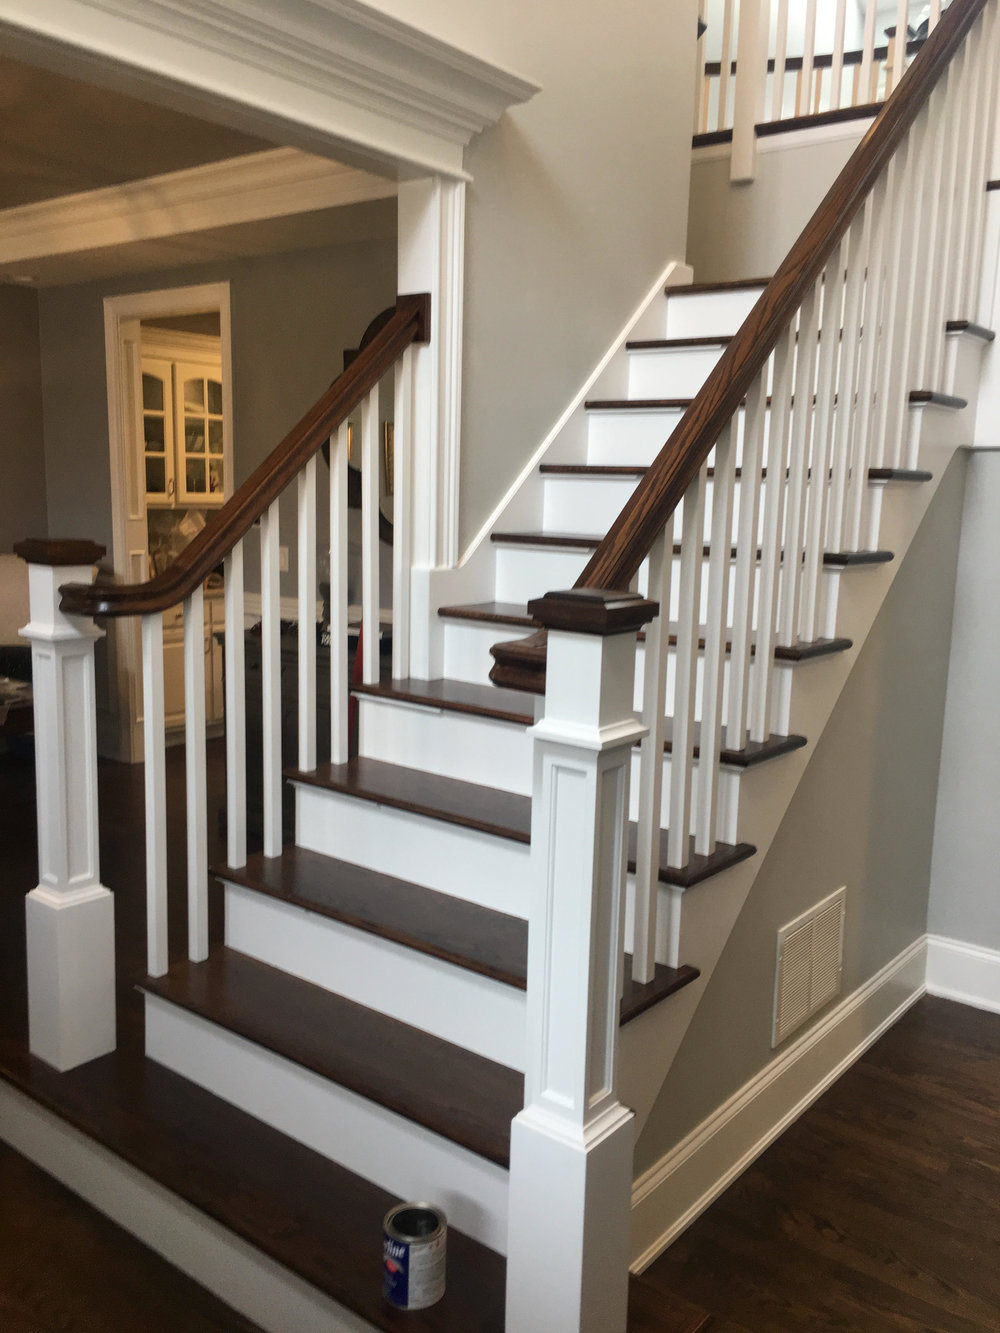 STAIR CASE UPDATING WITH SQUARE SPINDLES